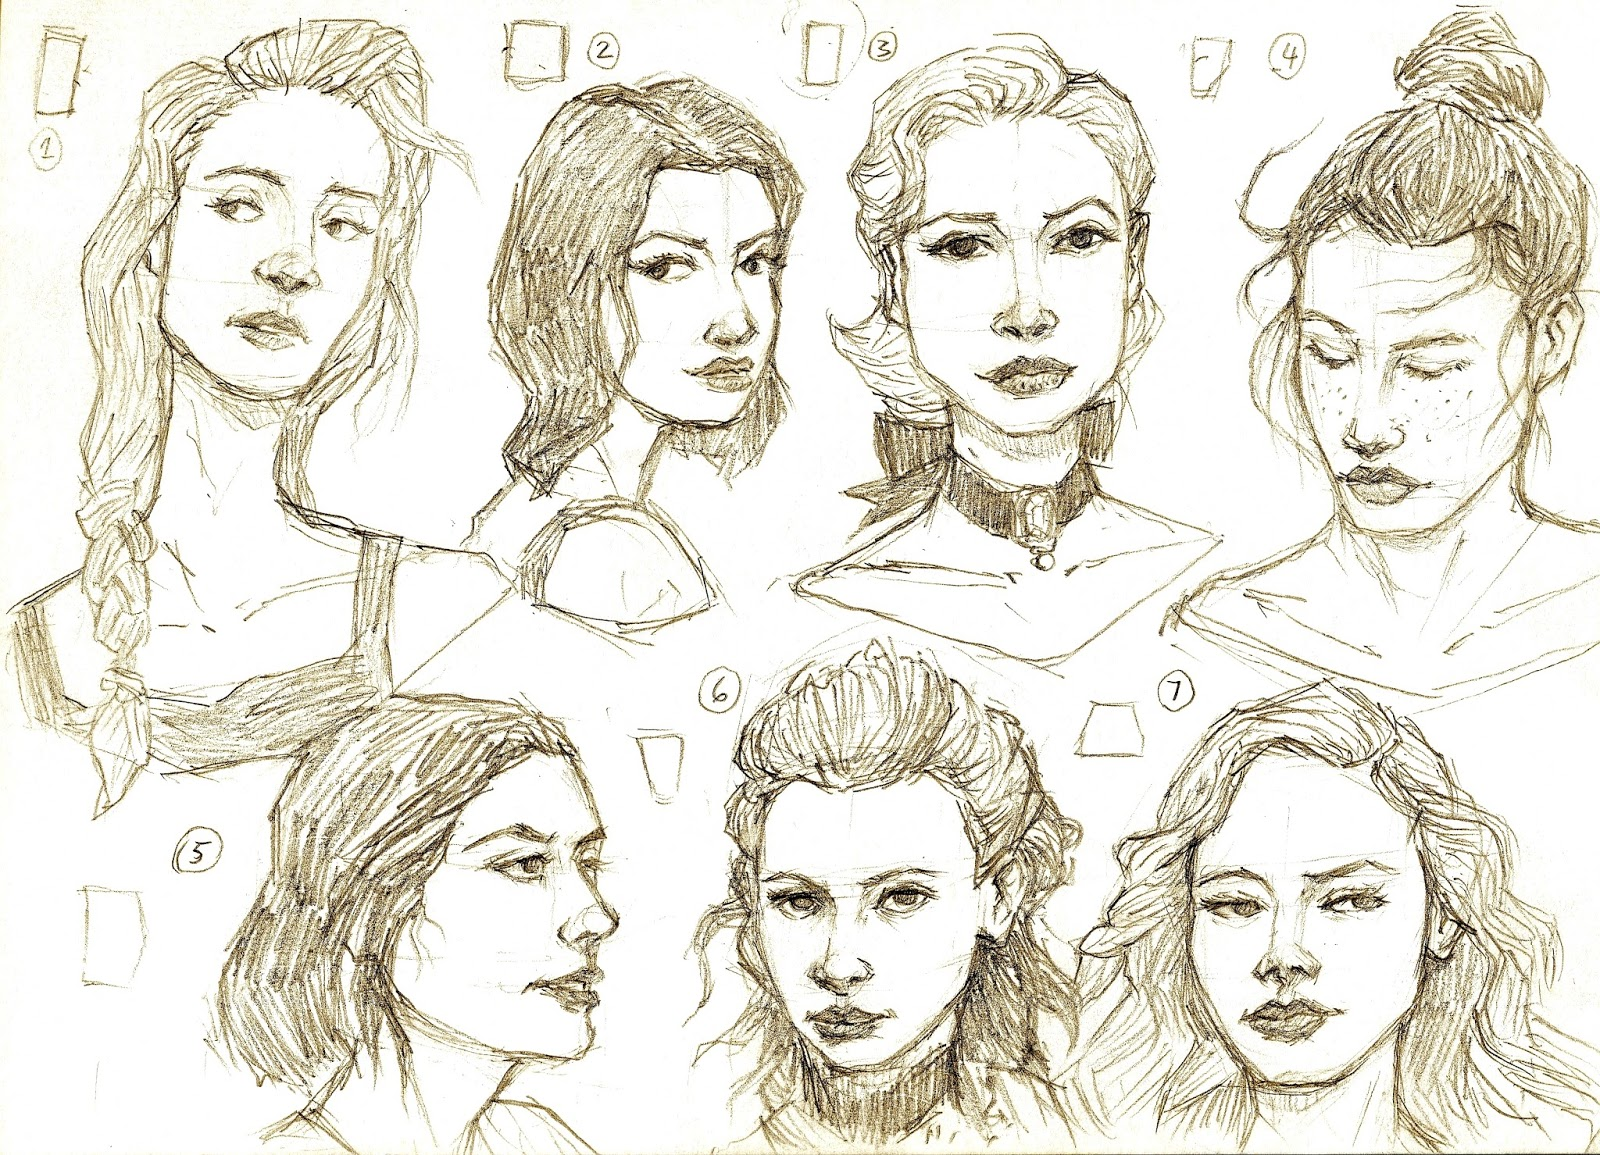 The Robot with the Light Bulb: Face Sketches - 1